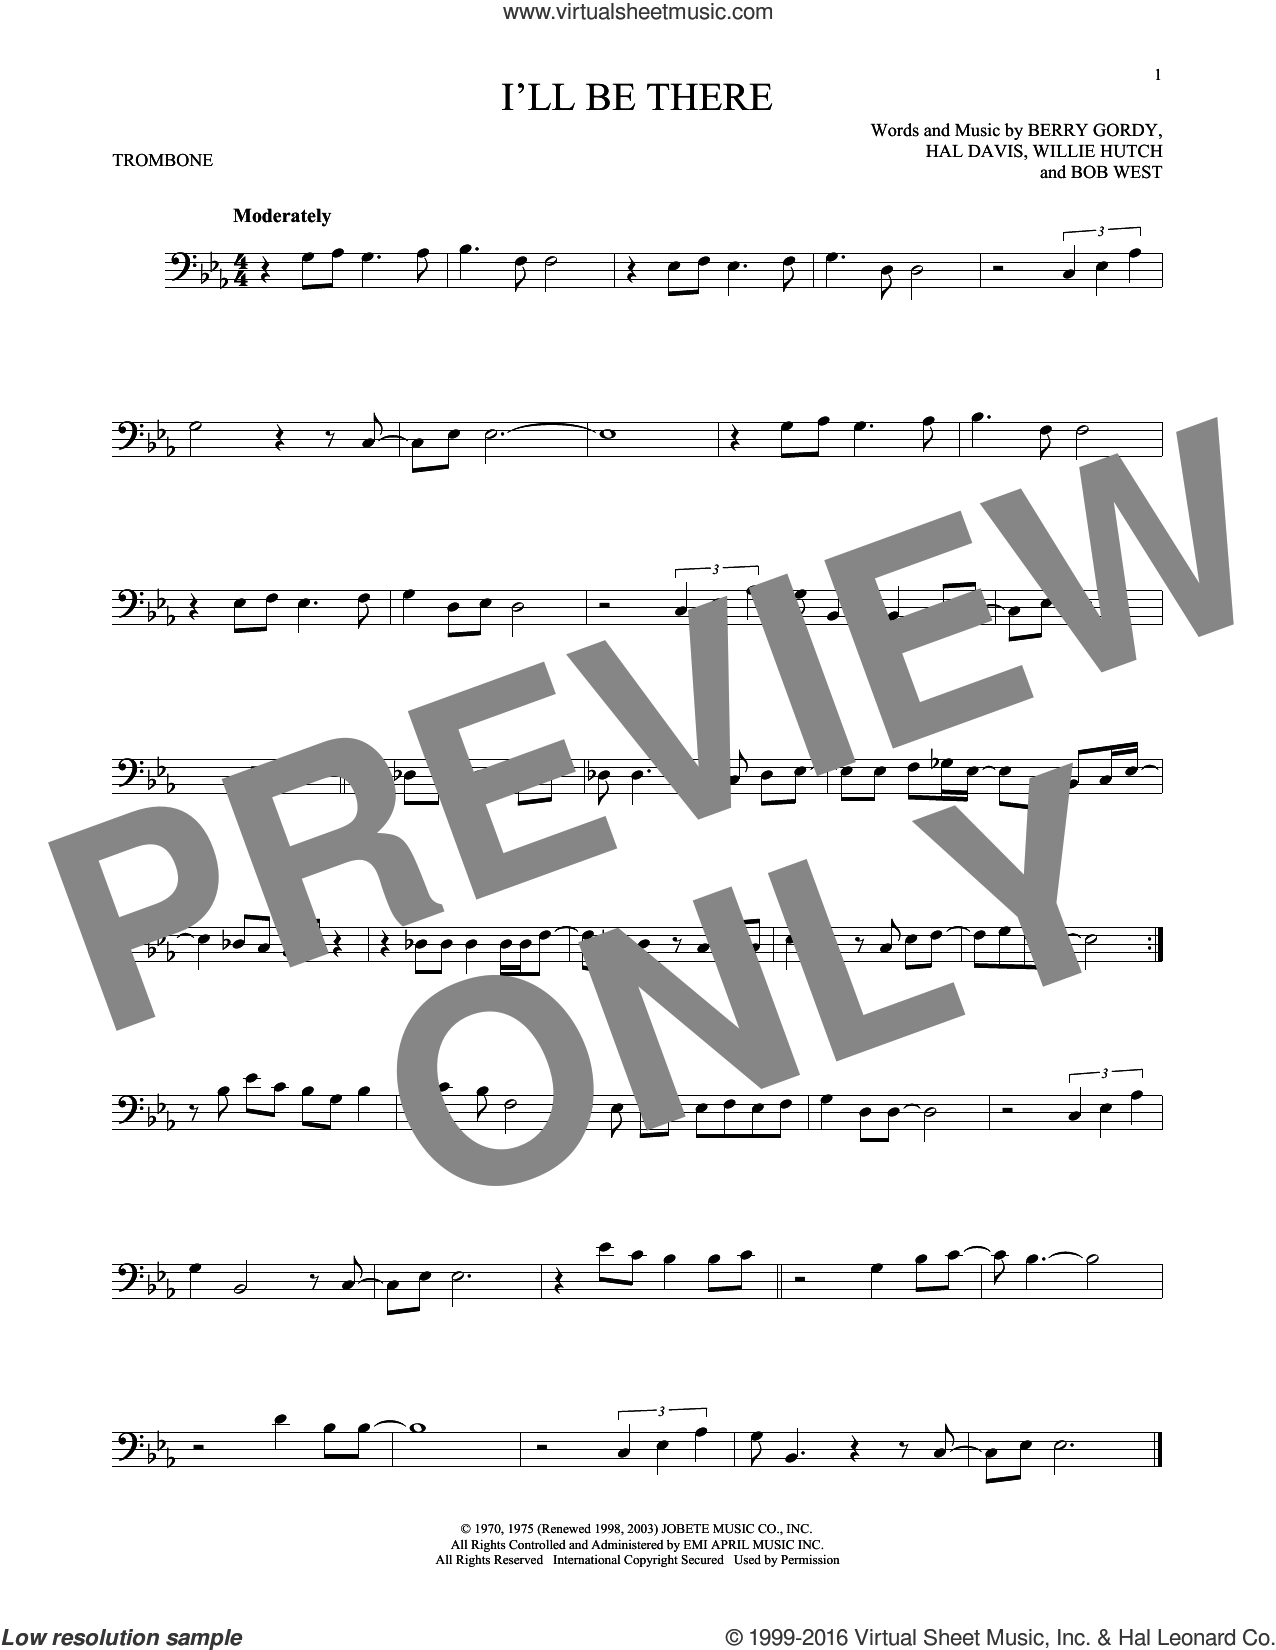 I'll Be There sheet music for trombone solo by The Jackson 5, Berry Gordy Jr., Bob West and Hal Davis, intermediate skill level